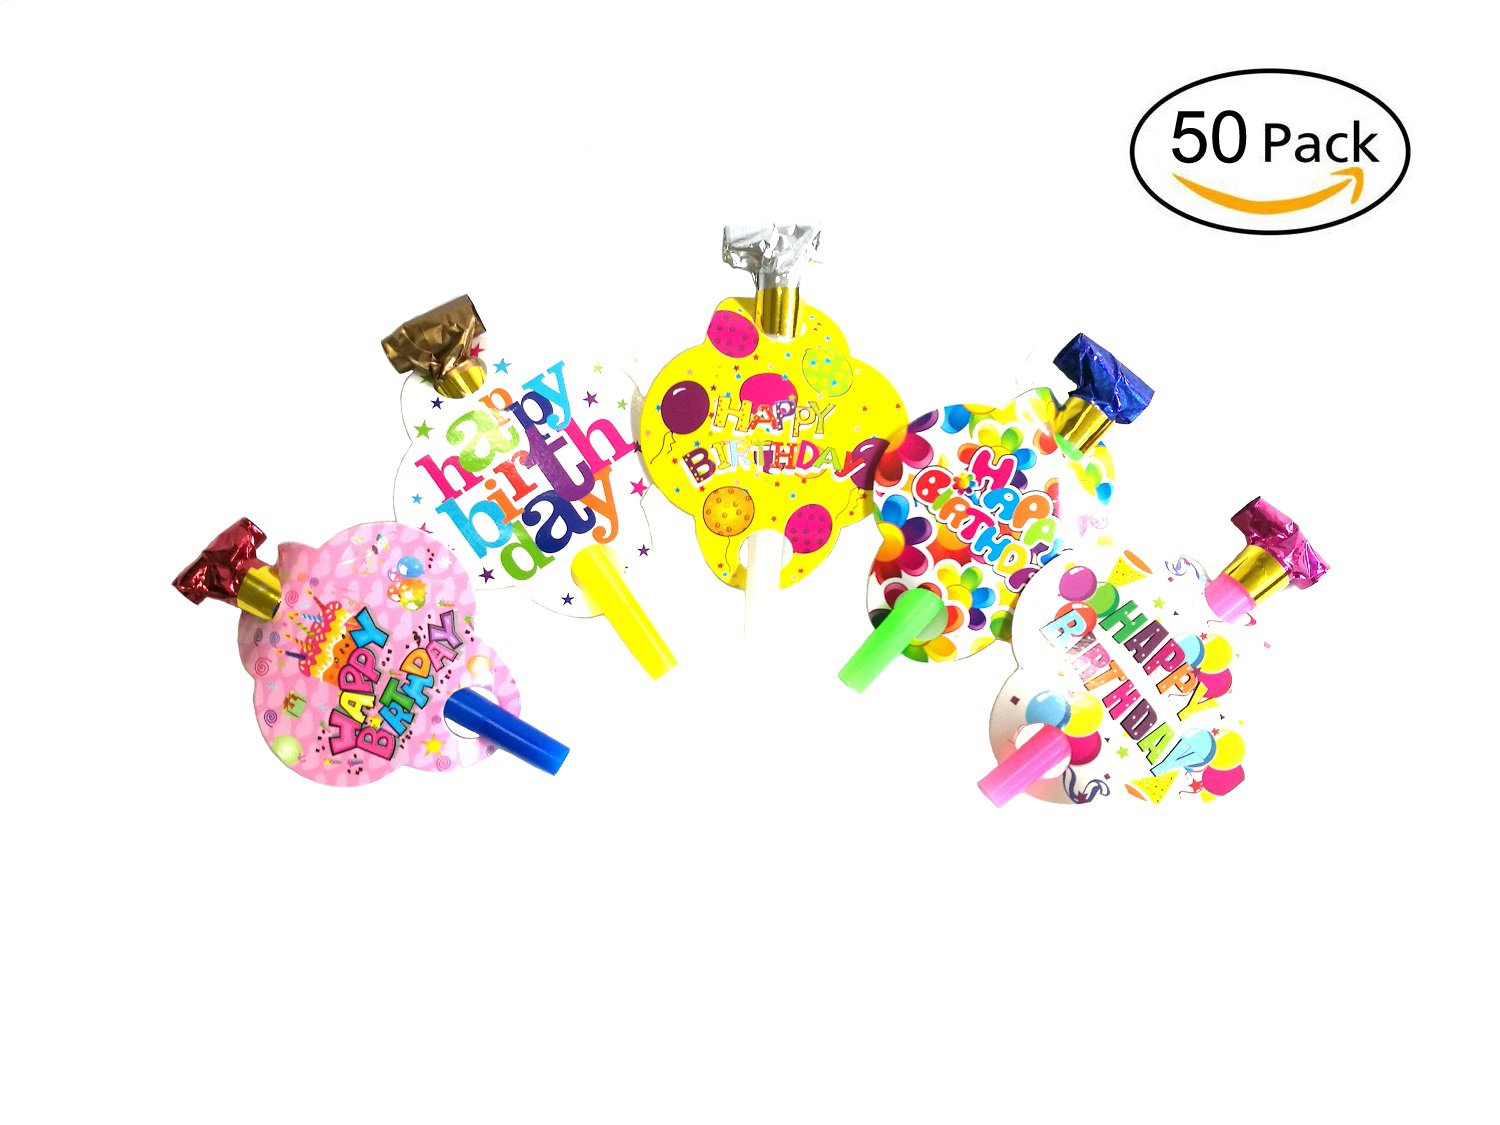 50 pcs Party Horns Party Blowers Noisemakers Whistles Colorful Blowouts (Includes 5 Different Patterns)